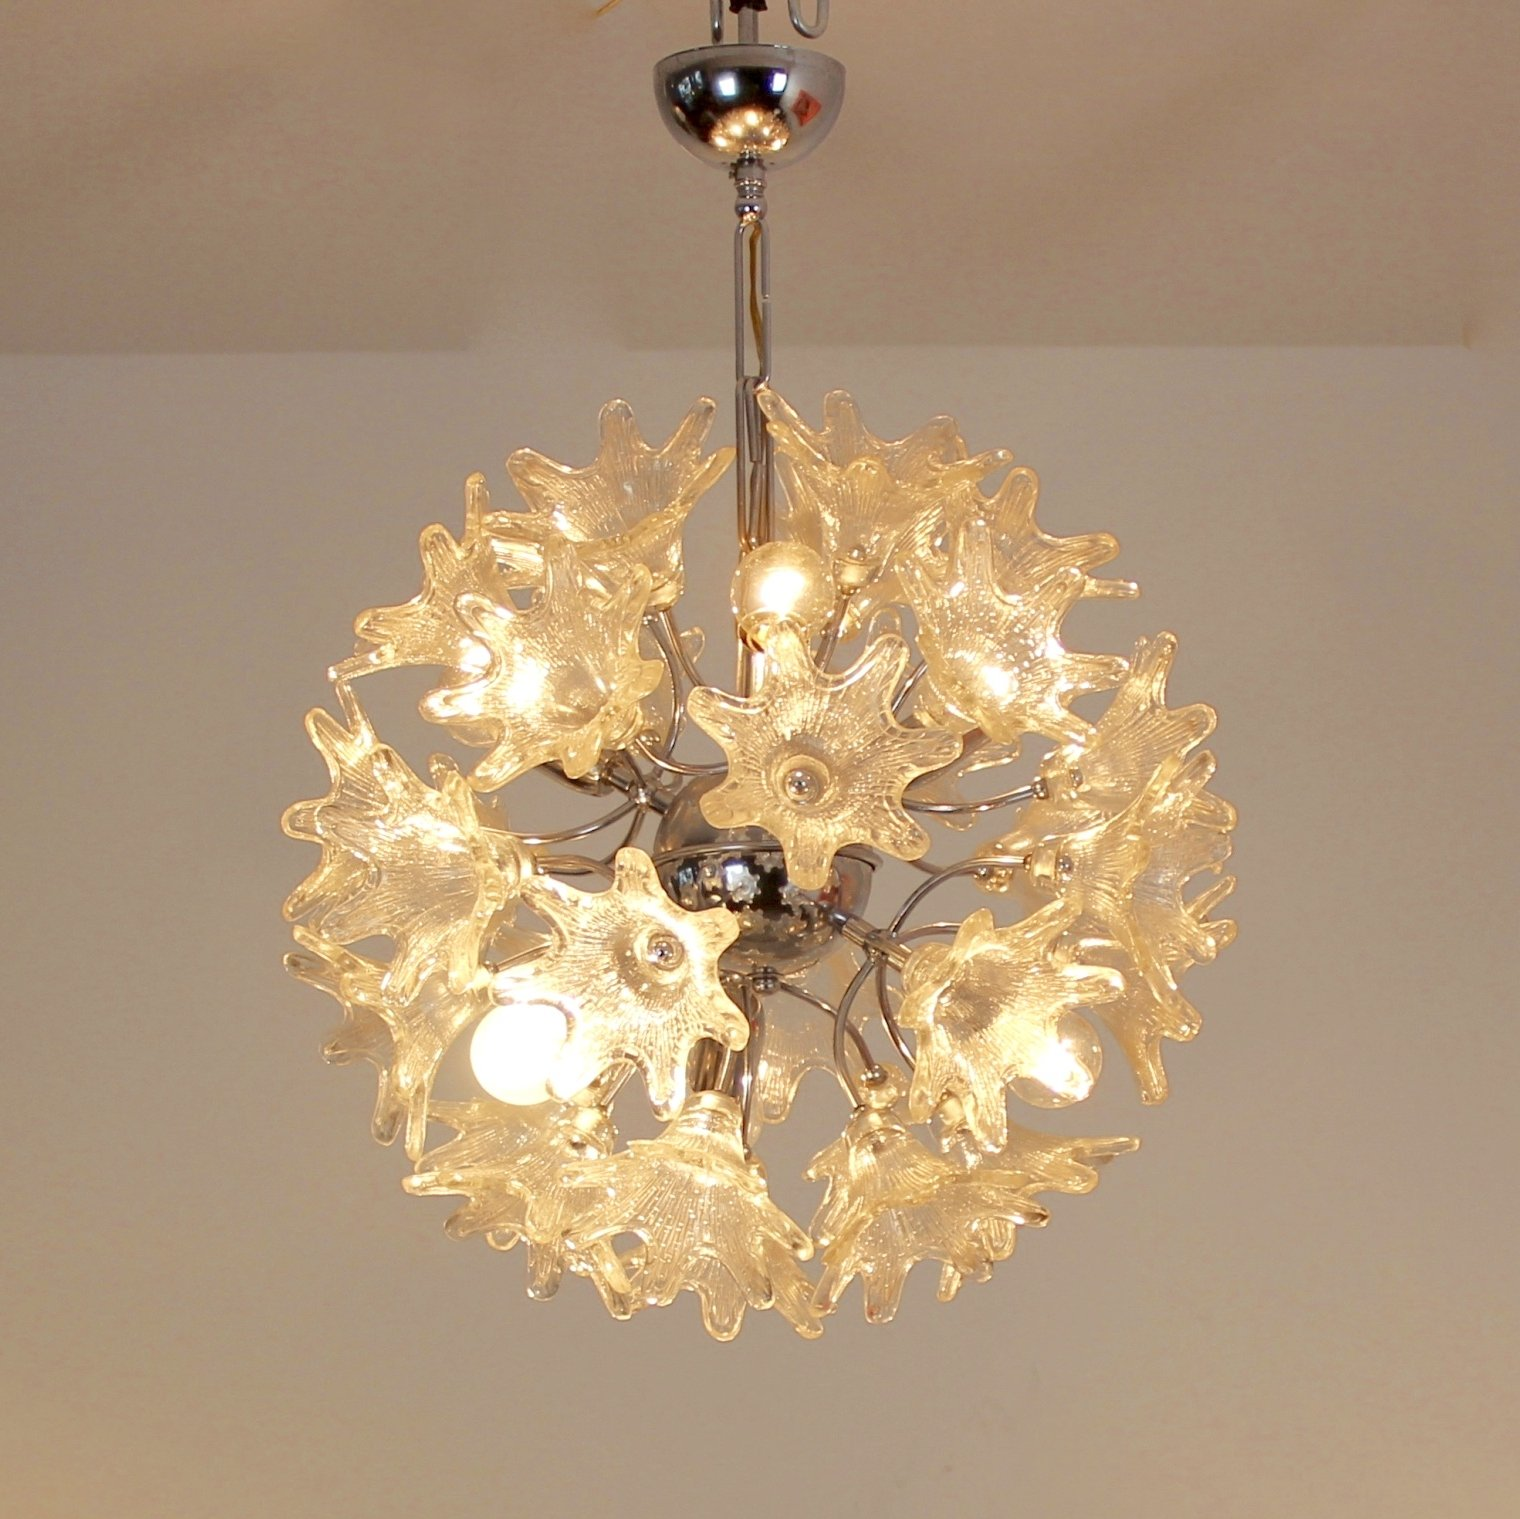 of chandelier chandeliers in with murano glass lovely creative ideas design decorating home lighting